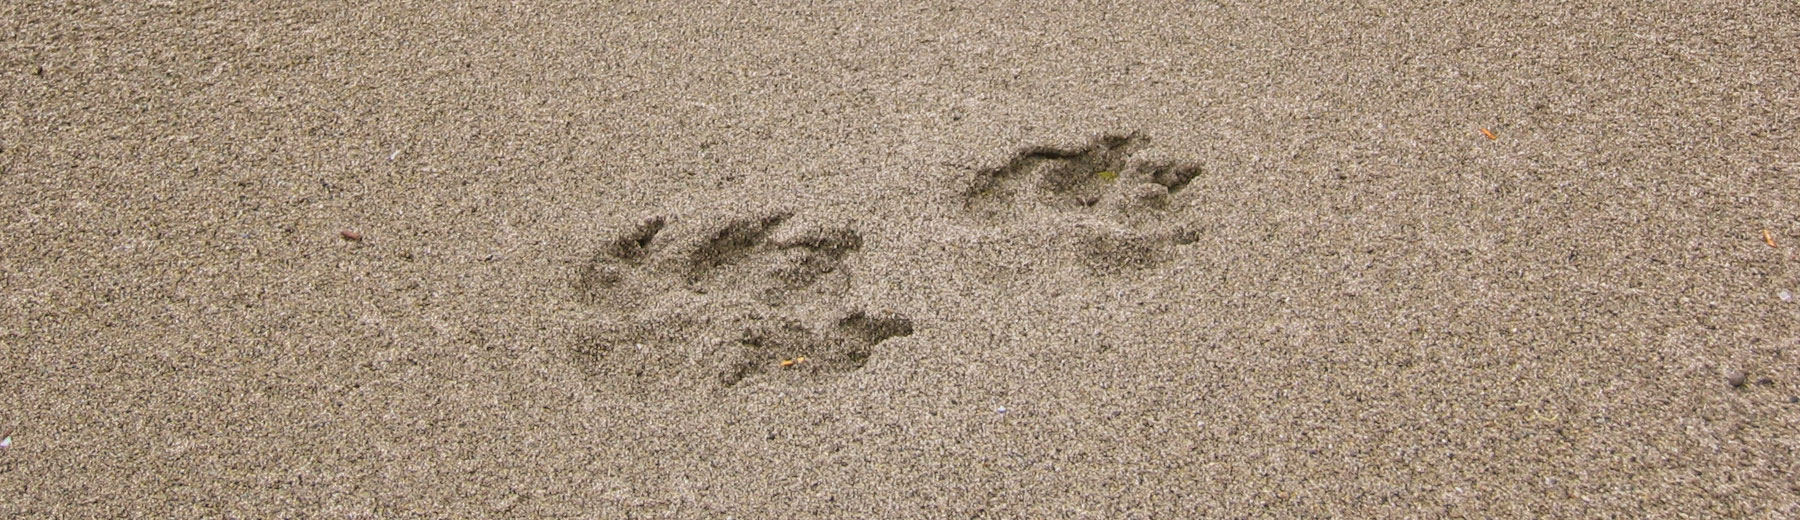 Wolf tracks on the beach, BC